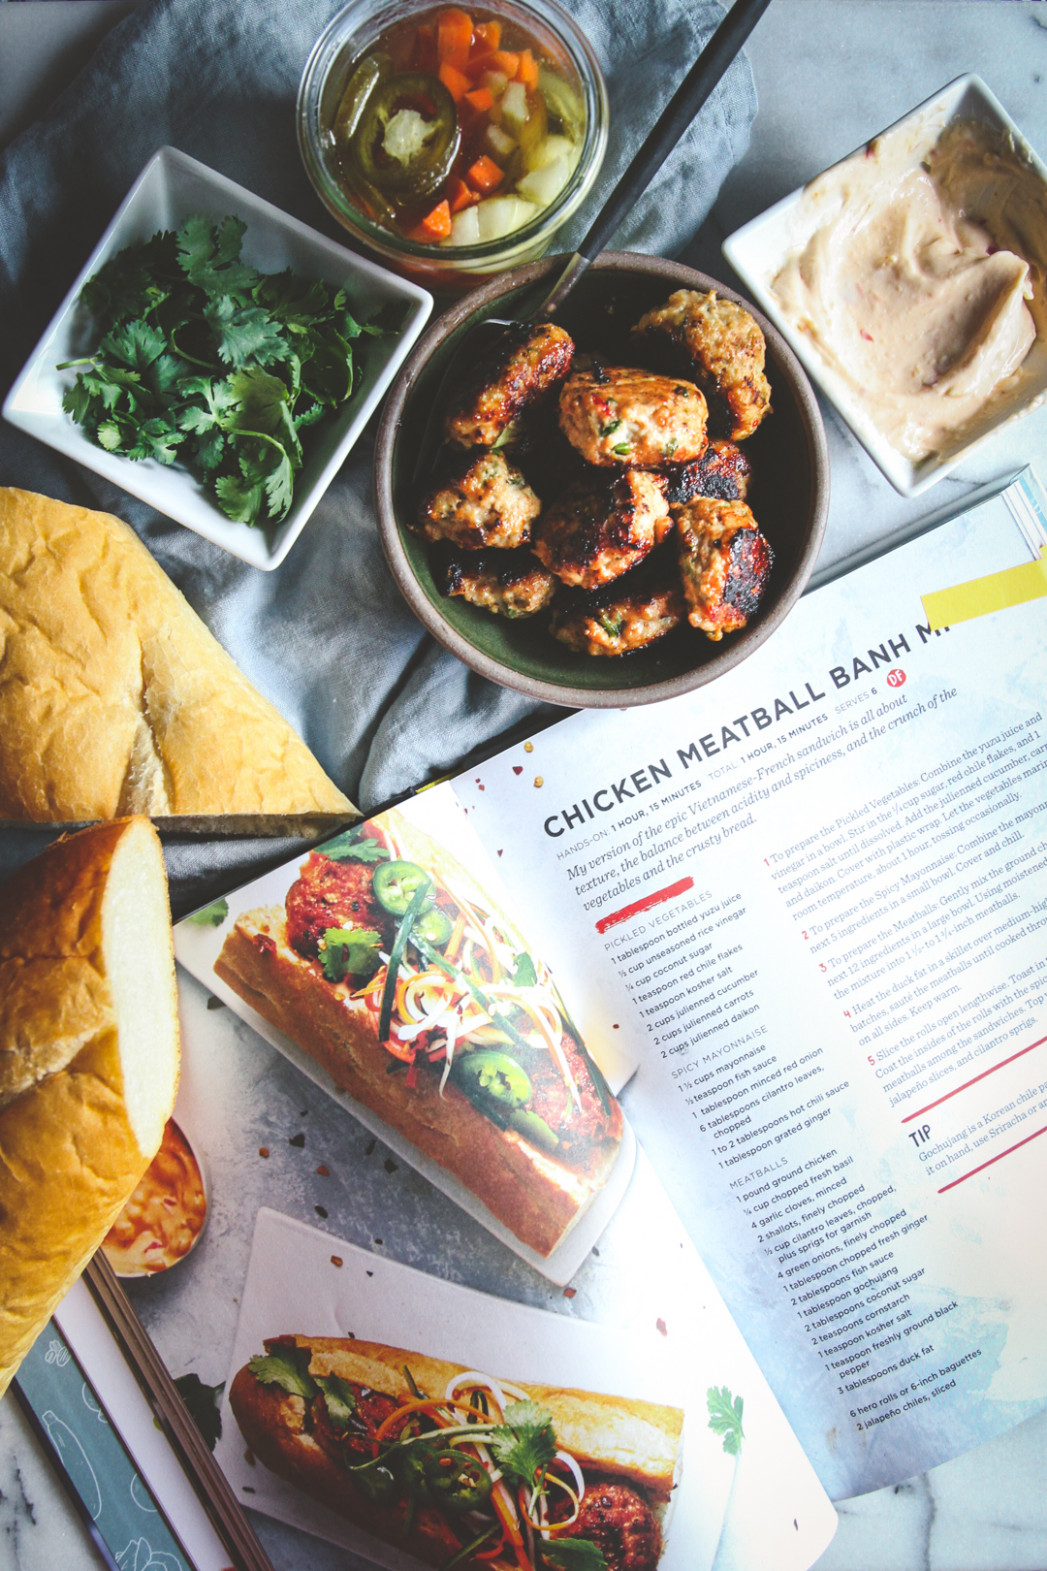 Chicken Meatball Banh Mi Sandwiches - Sweetphi - recipes you can make with ground chicken